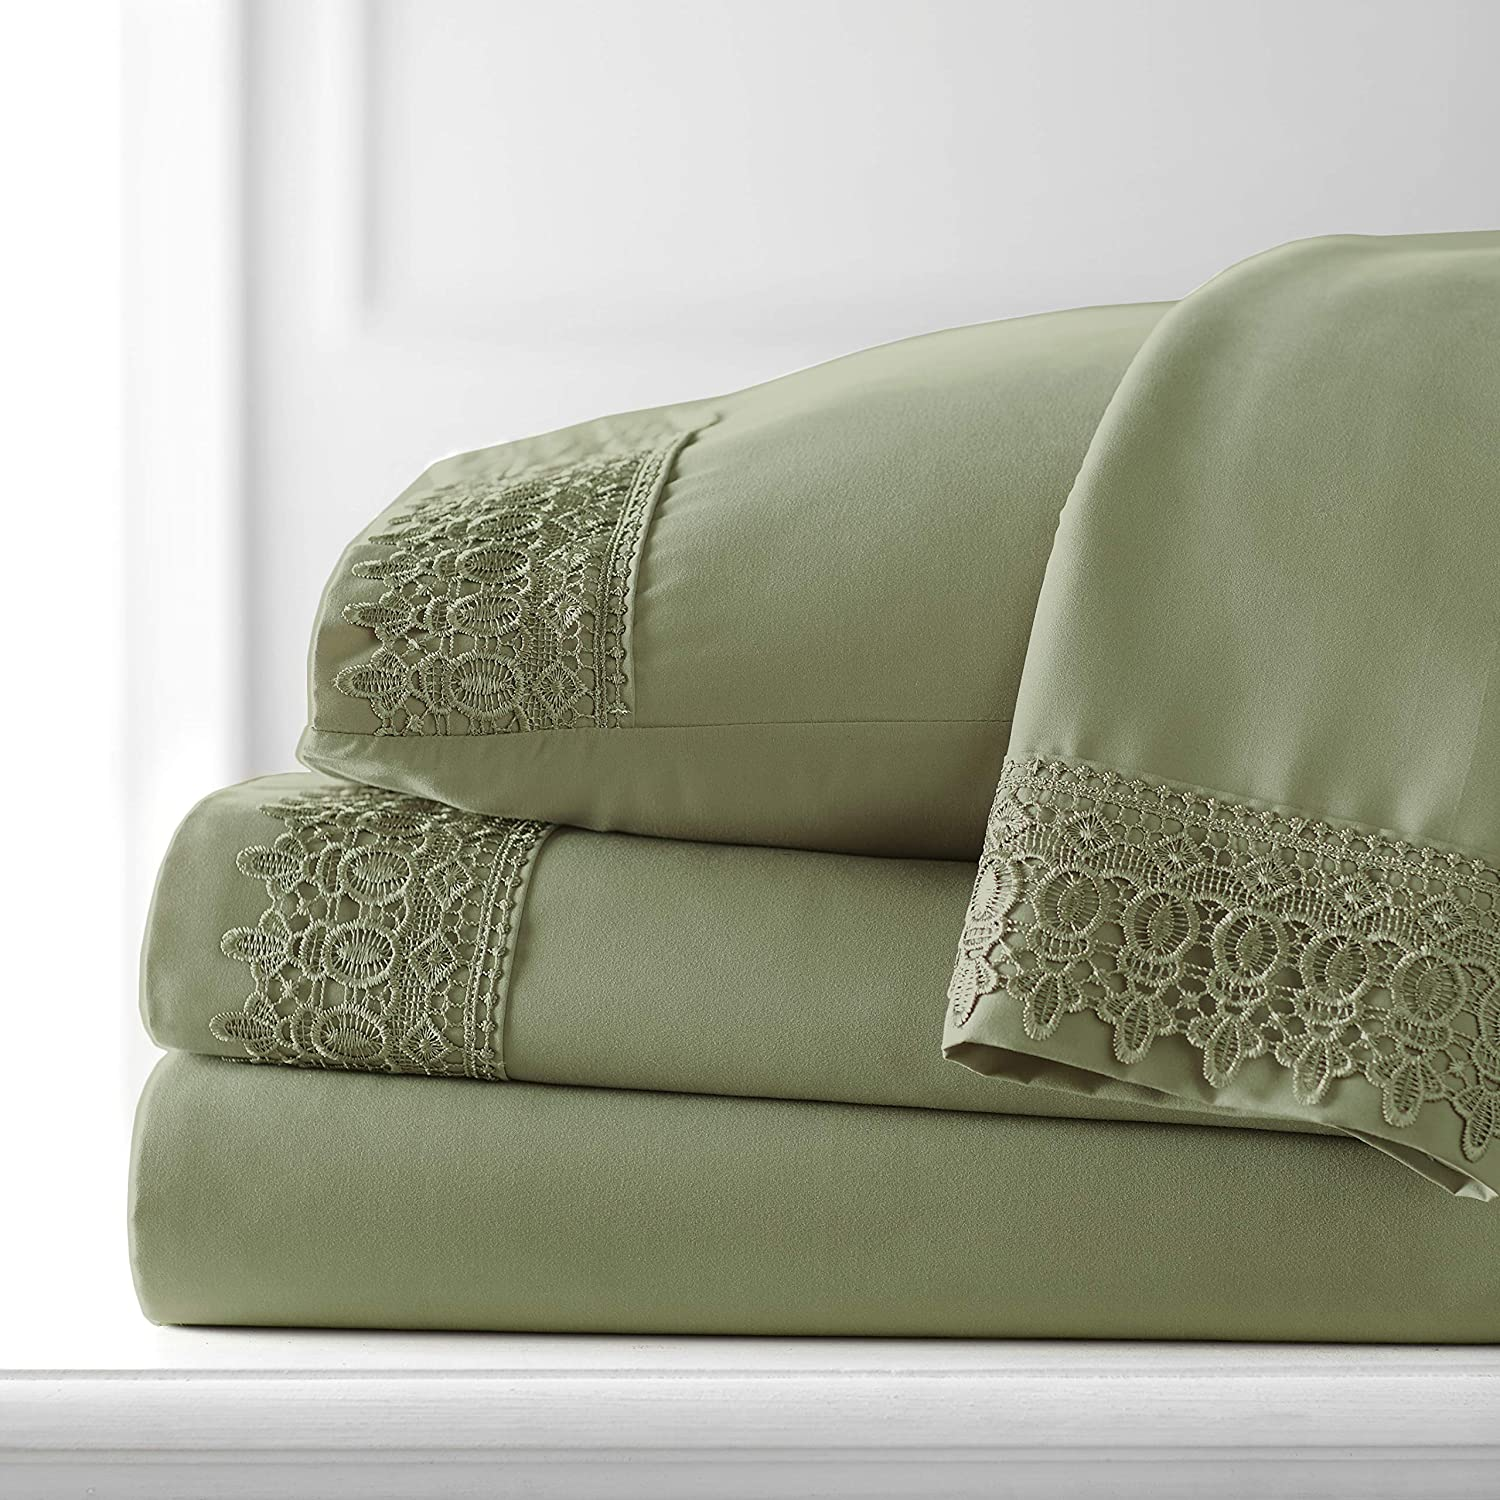 Southshore Fine Living, Inc. Vilano Lace - 21 Inch Deep Pocket Bed Sheet Set, Wrinkle, Fade, & Stain Resistant, Hypoallergenic, Ultra-Soft 4 Piece Set, Sage Green, Queen